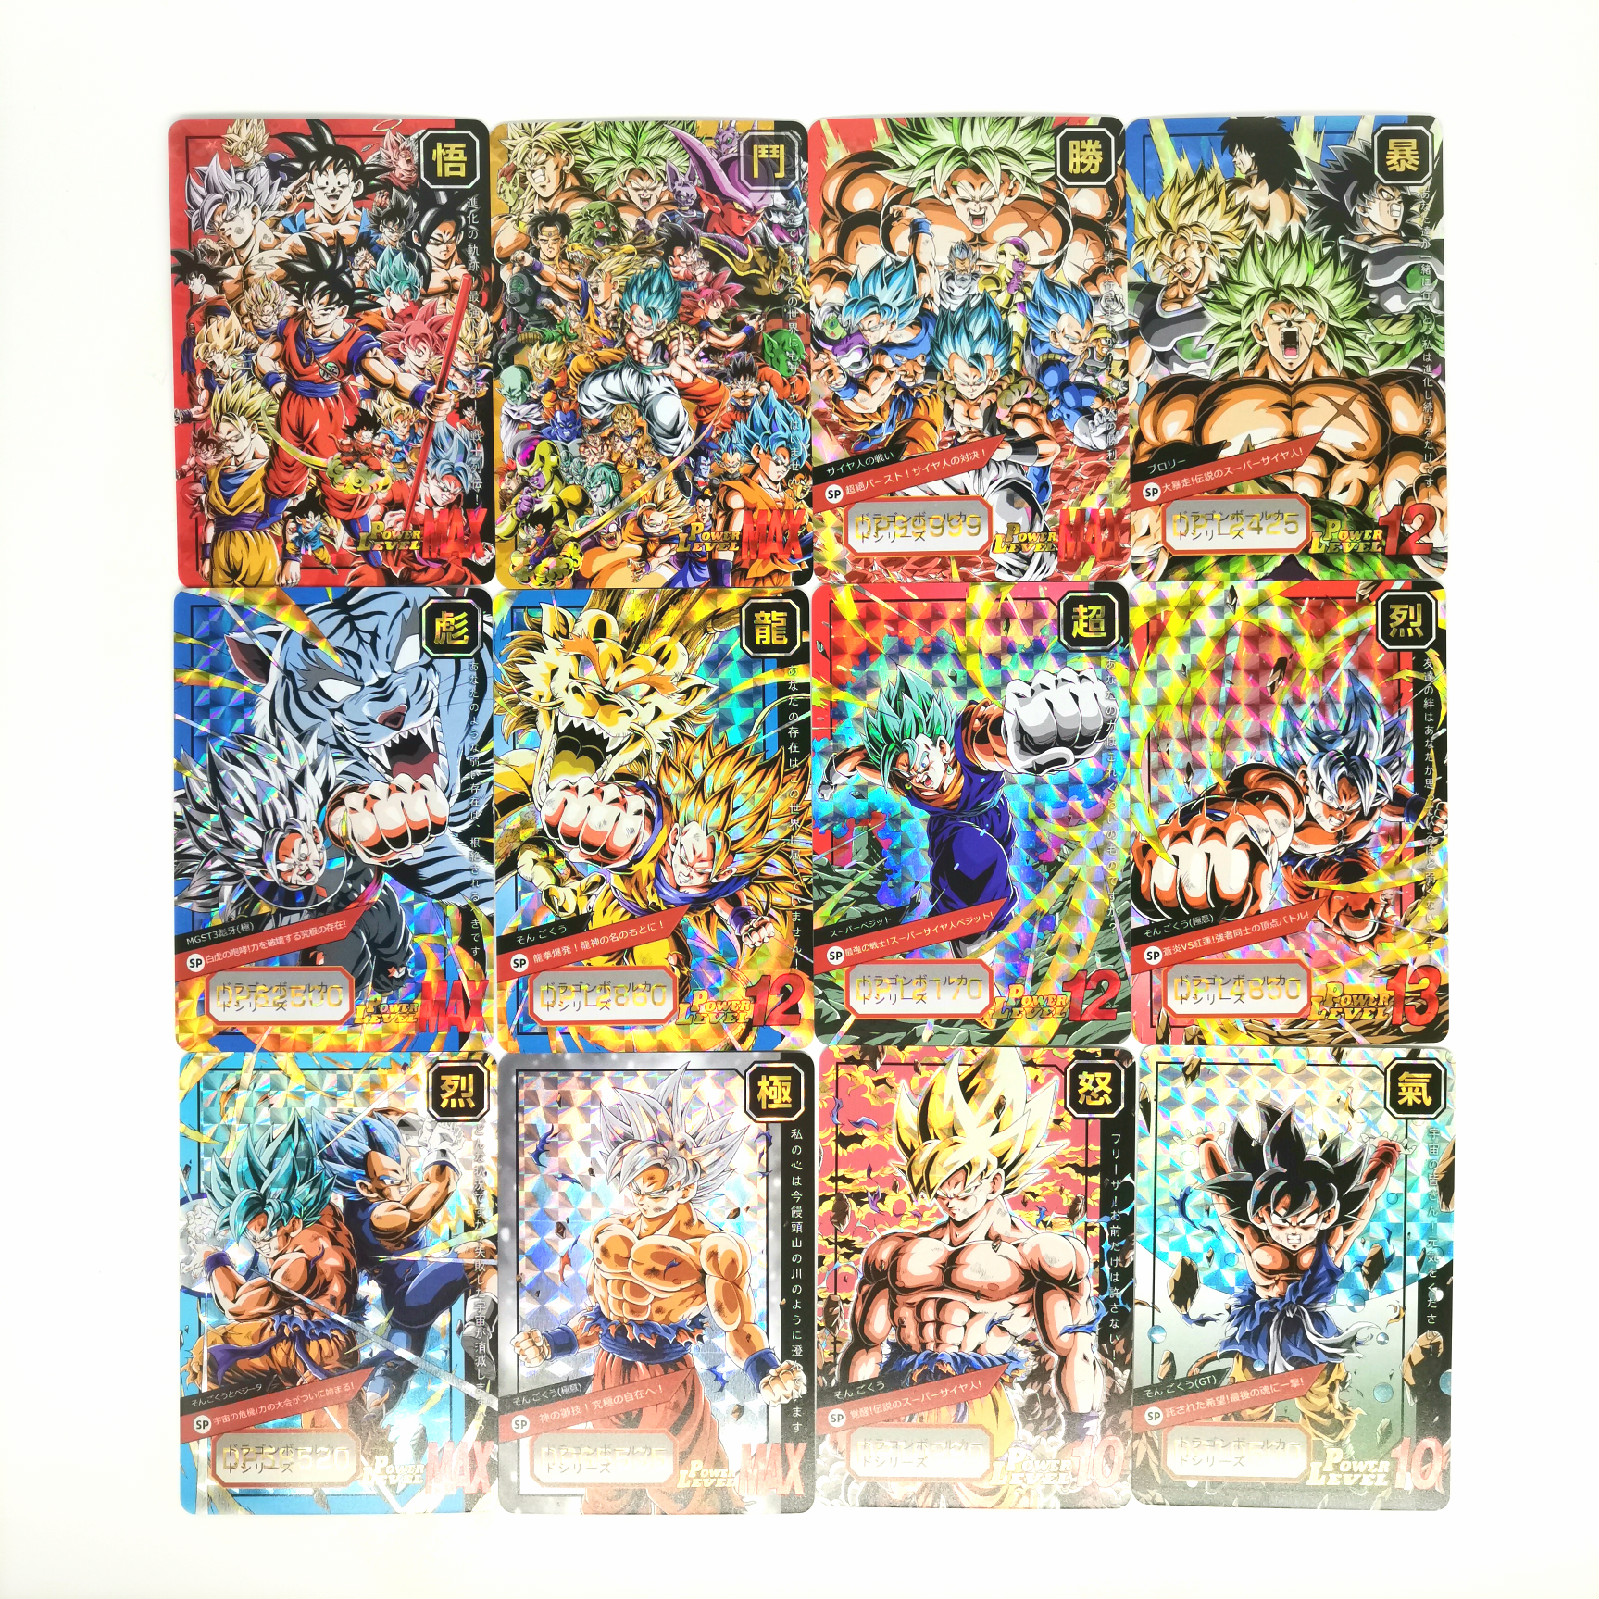 New 29pcs/set Super Dragon Ball Z Heroes Battle Card Ultra Instinct Goku Vegeta Game Collection Cards